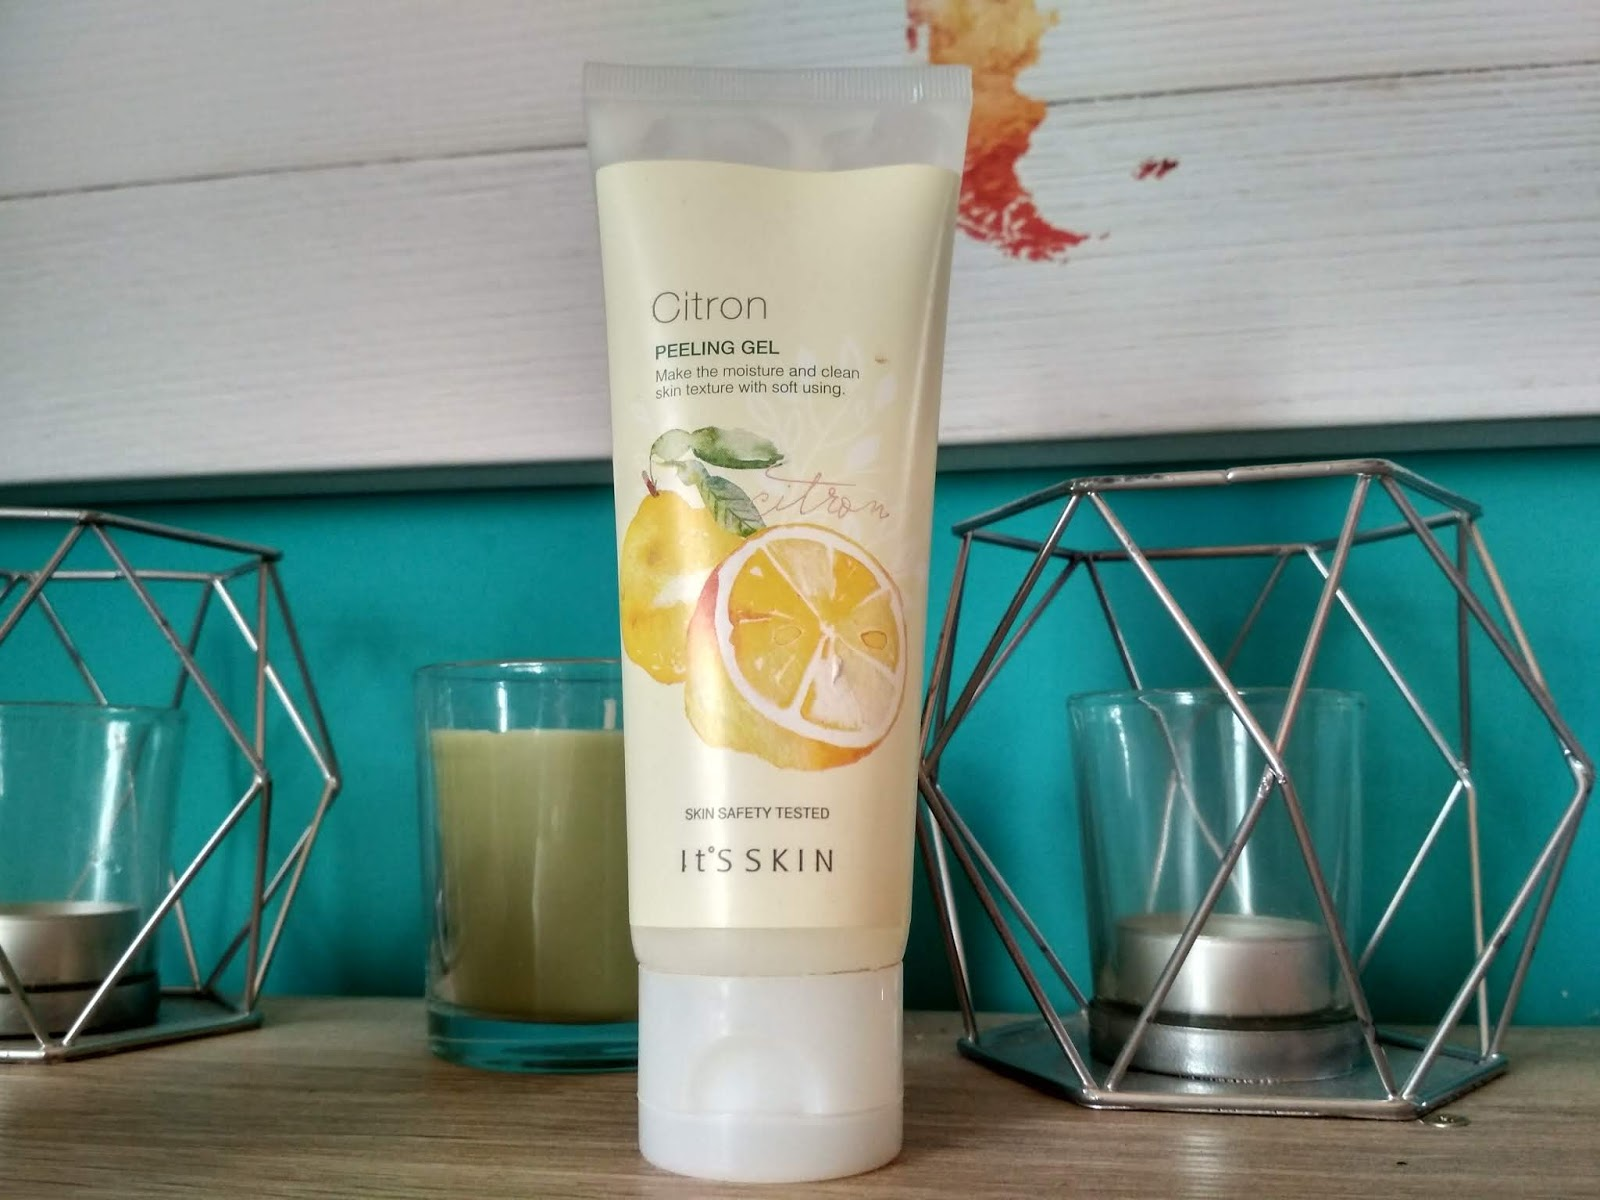 Recenzja - It's skin Citron peeling gel